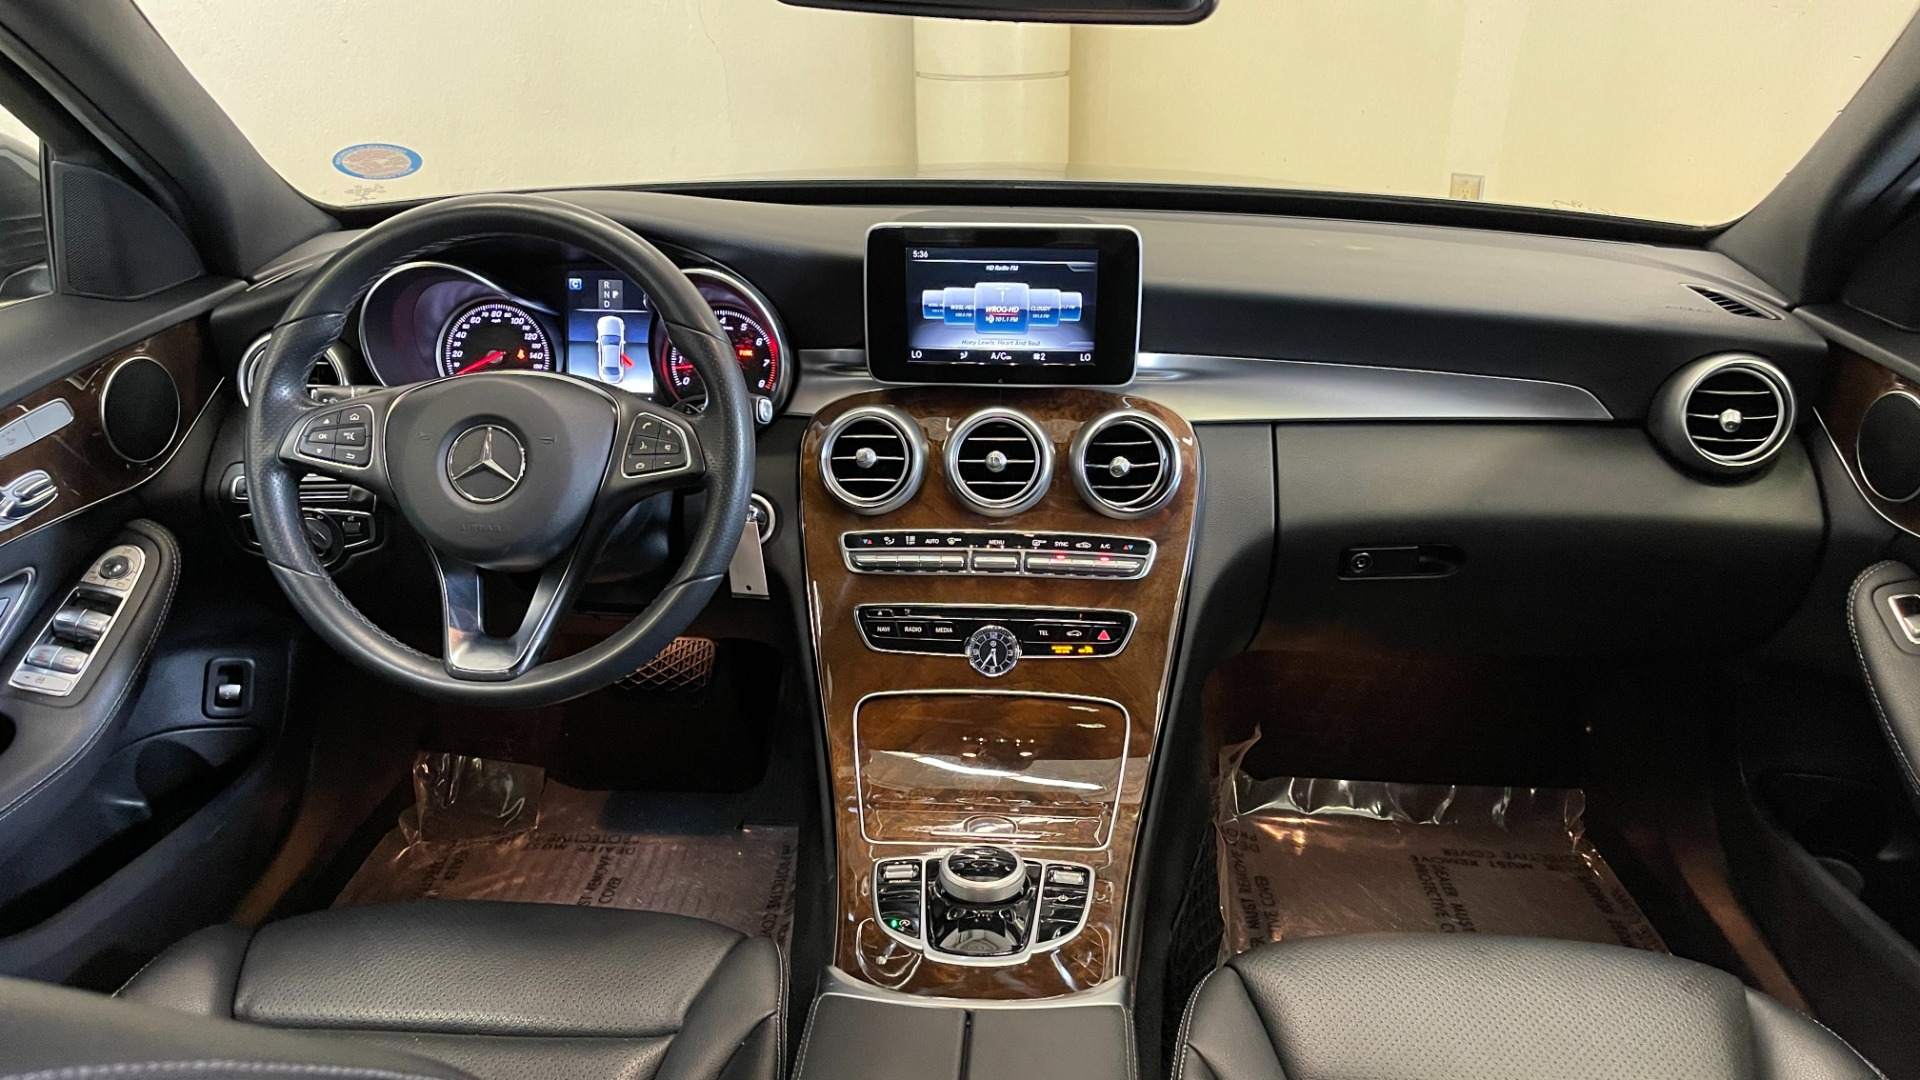 Used 2018 Mercedes-Benz C-CLASS C 300 PREMIUM / SUNROOF / APPLE CARPLAY / HTD STS / REARVIEW for sale $31,795 at Formula Imports in Charlotte NC 28227 46